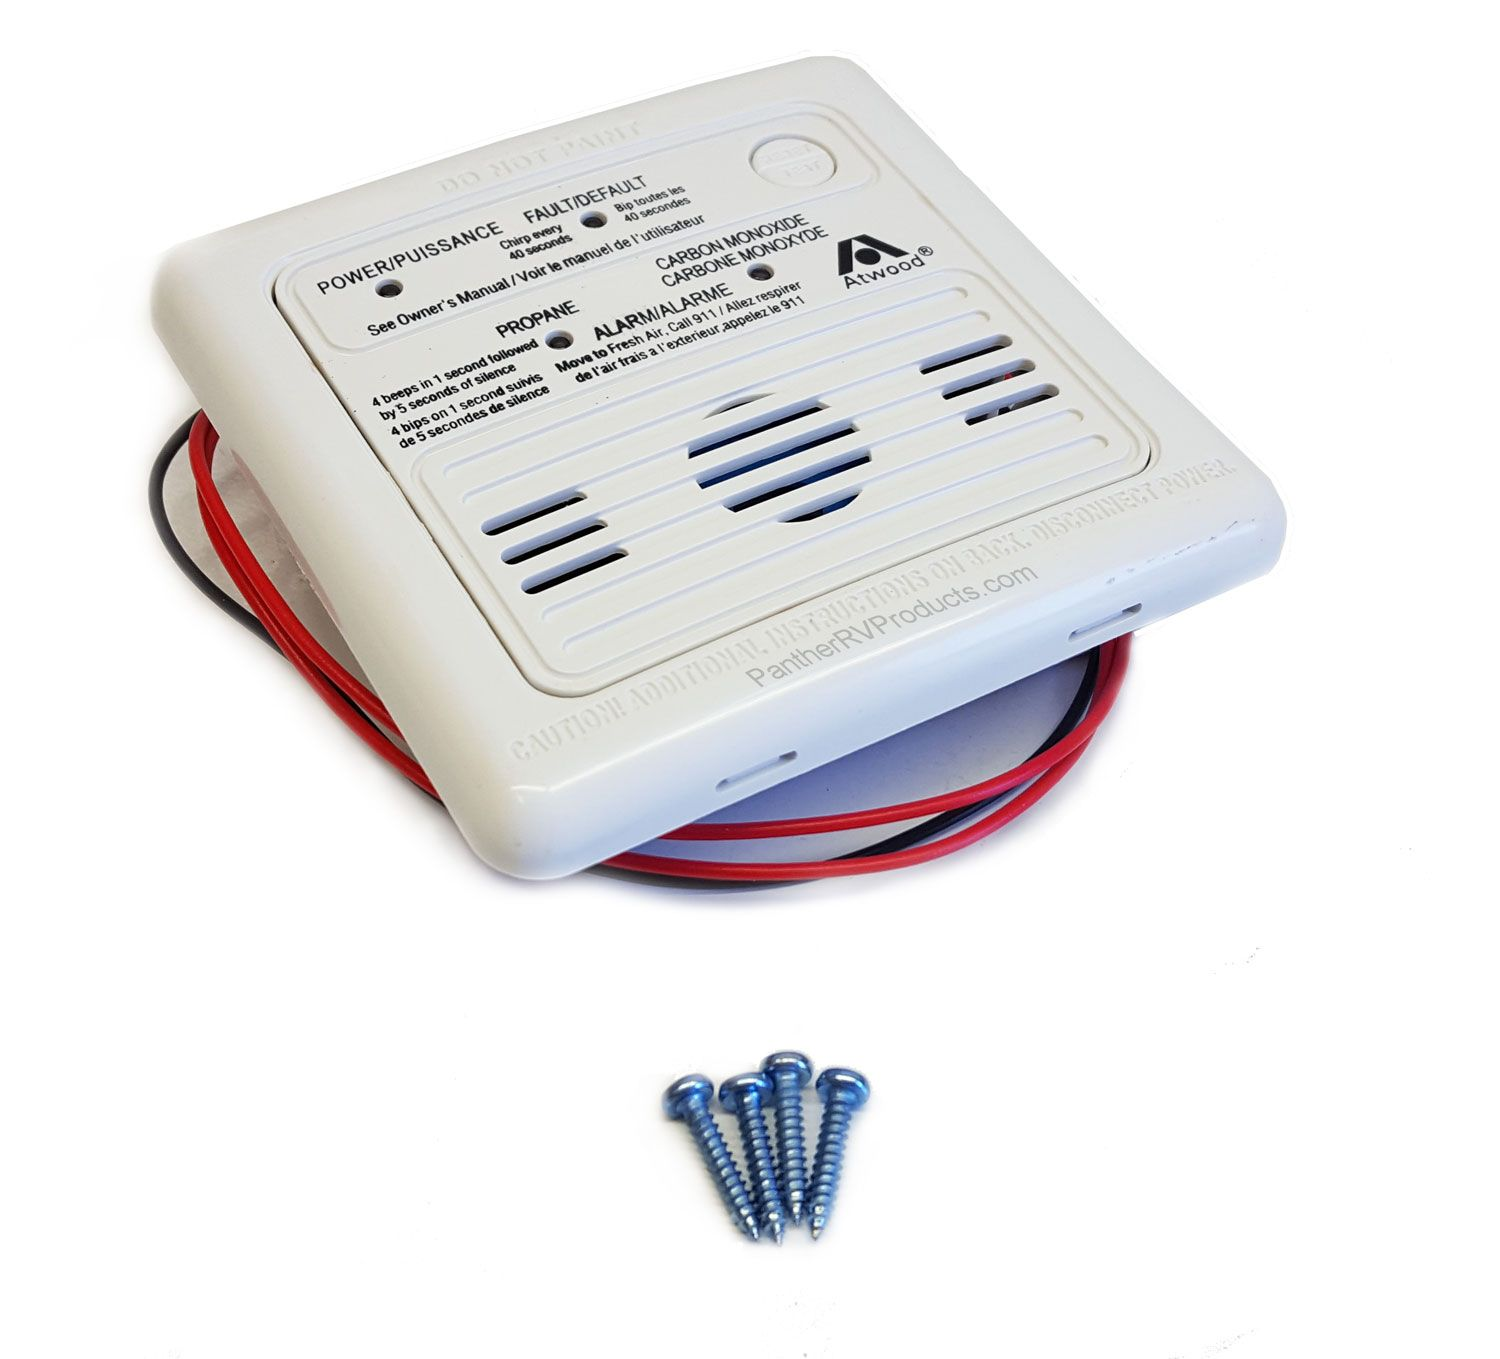 This Atwood Carbon Monoxide And Propane Co Lp Alarm Is A Sophisticated Instrument That Has Been Carefully Designed A Propane Liquefied Petroleum Gas Gas Cans